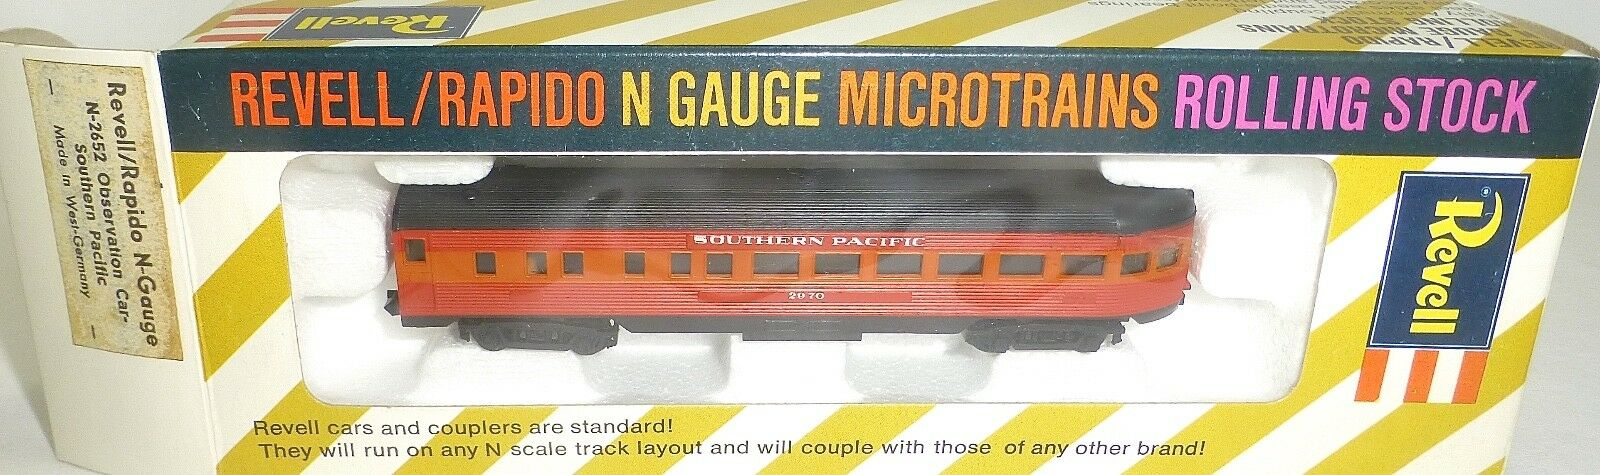 Southern Pacific Observation auto Revell Rapido Microssorains N2652 Conf. Orig.